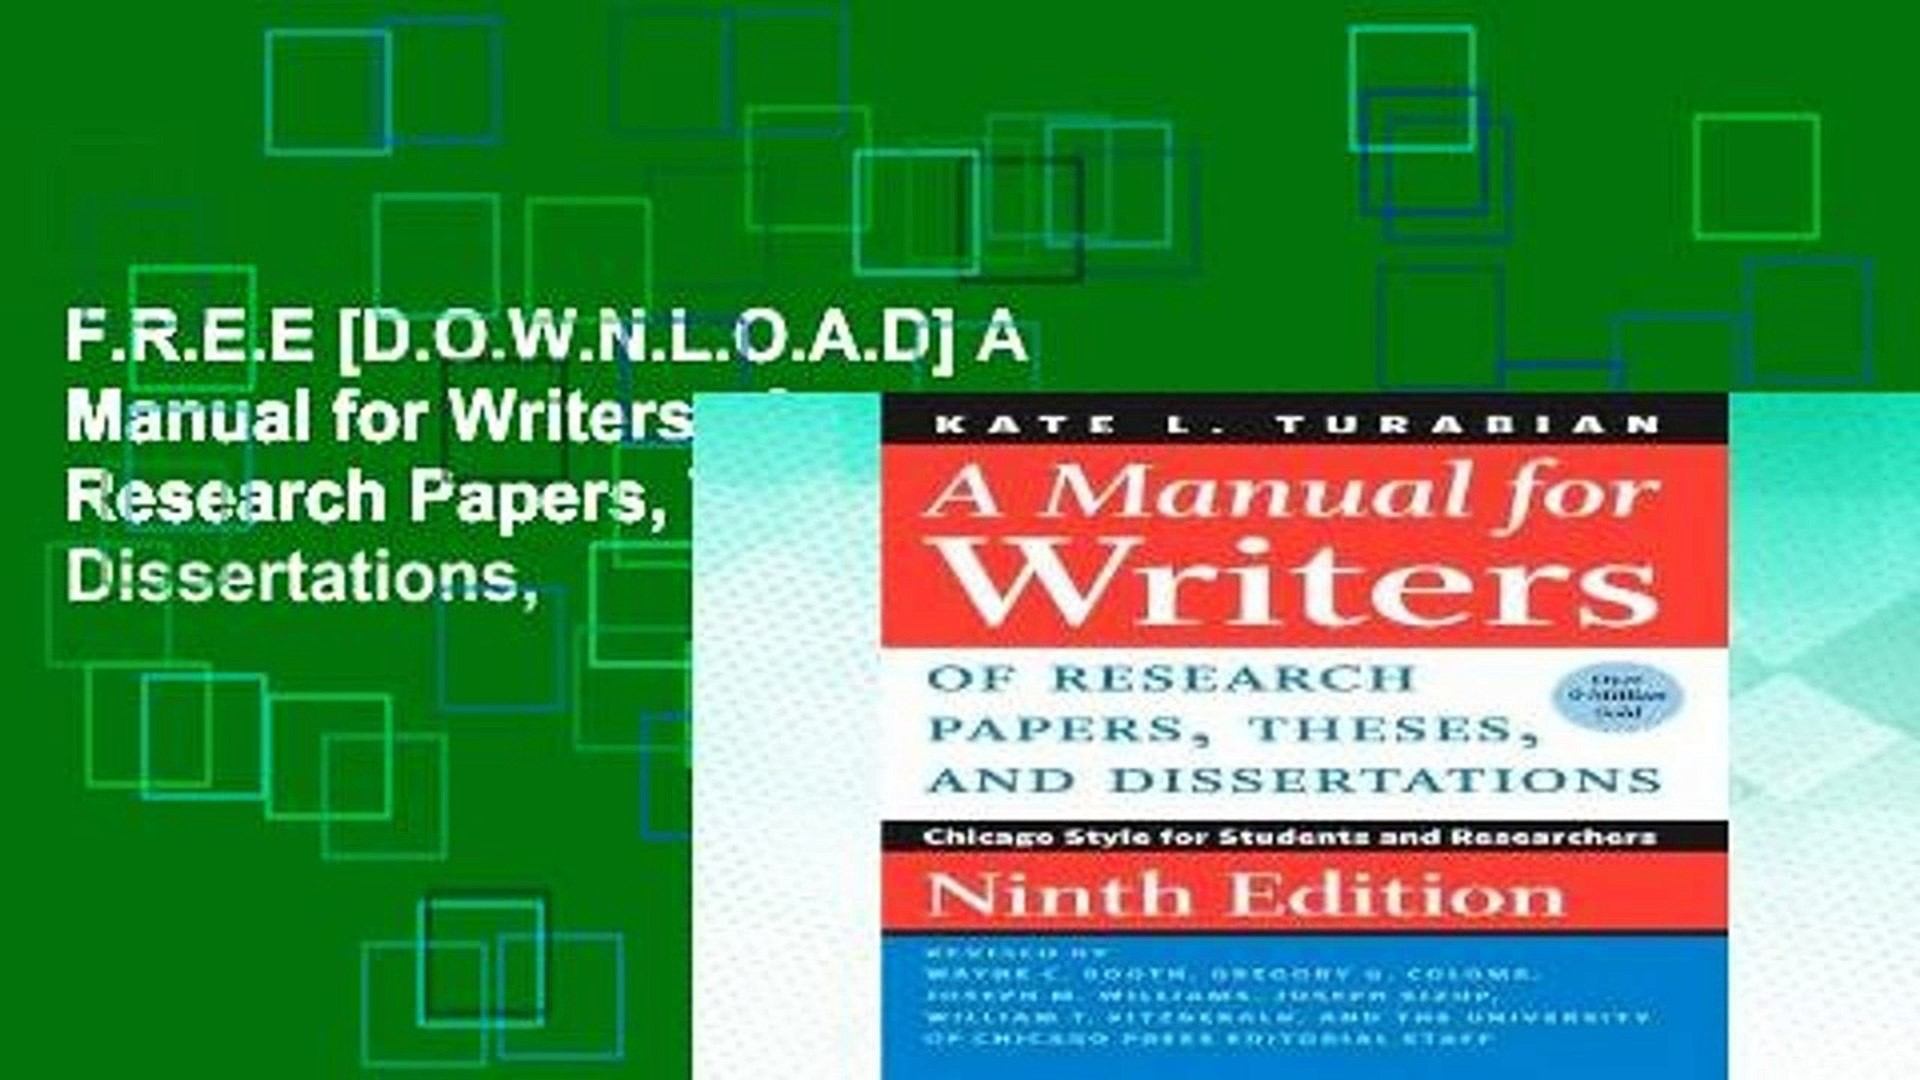 016 Manual For Writers Of Research Papers Theses And Dissertations Paper X1080 Sensational A 8th Edition Pdf Eighth 1920